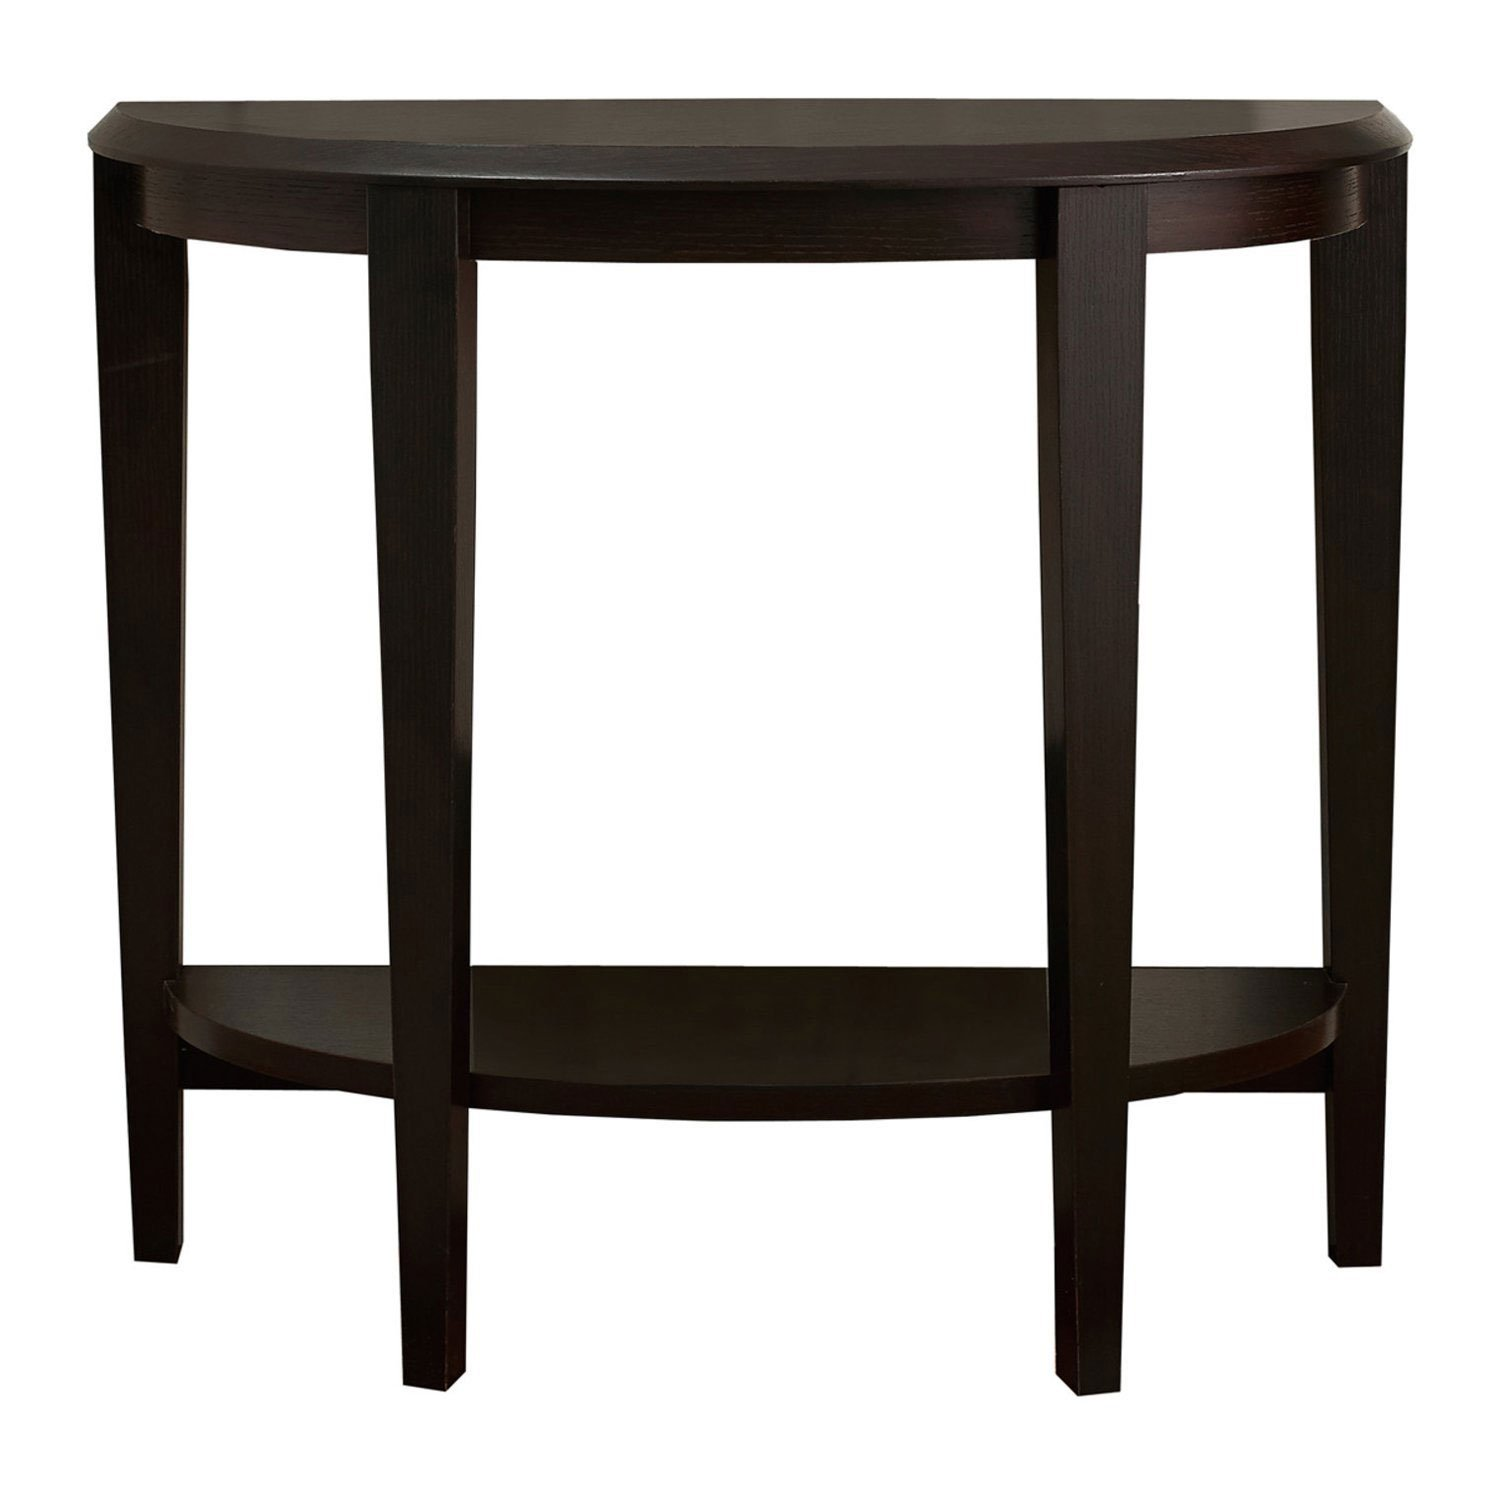 monarch accent table cappuccino hall console pebble side cherry wood dinner dale tiffany wisteria lamp grohe shower head small silver west elm room planner modern hallway teal